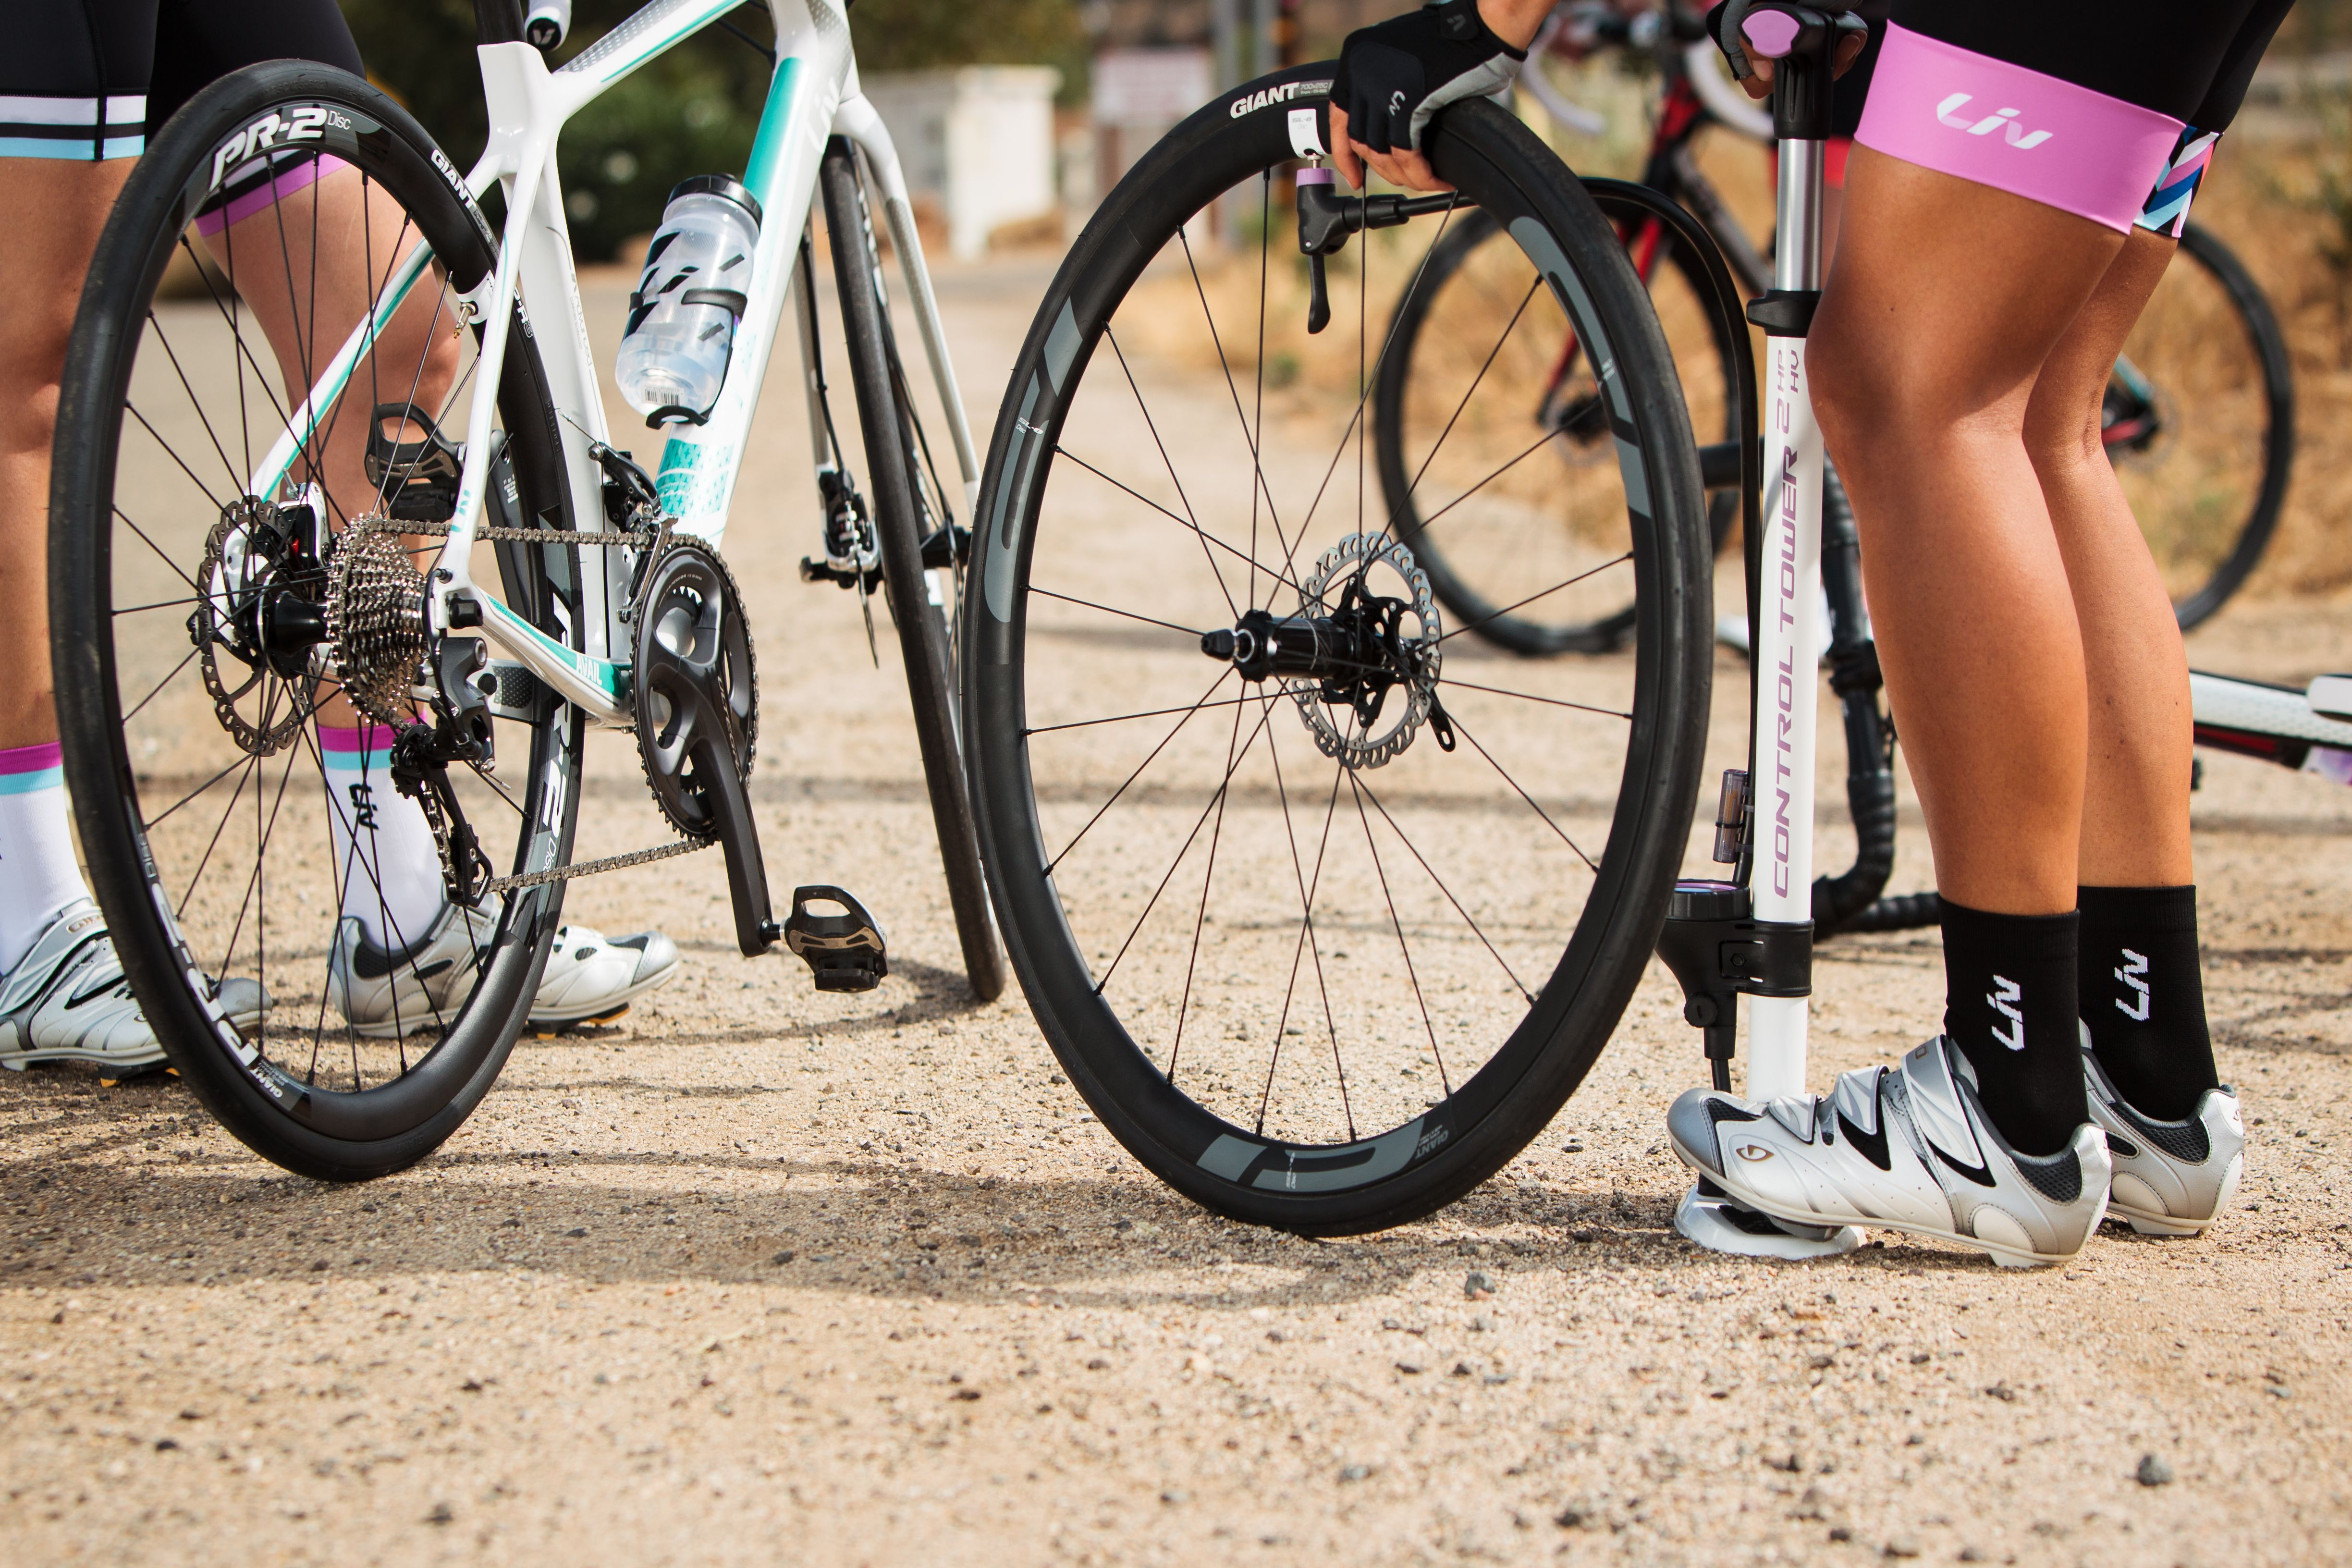 Diy How To Fix A Flat Tire Step By Step Guide So You Can Be Independent On Your Ride Liv Cycling Biking Diy Tire Steps Cycling